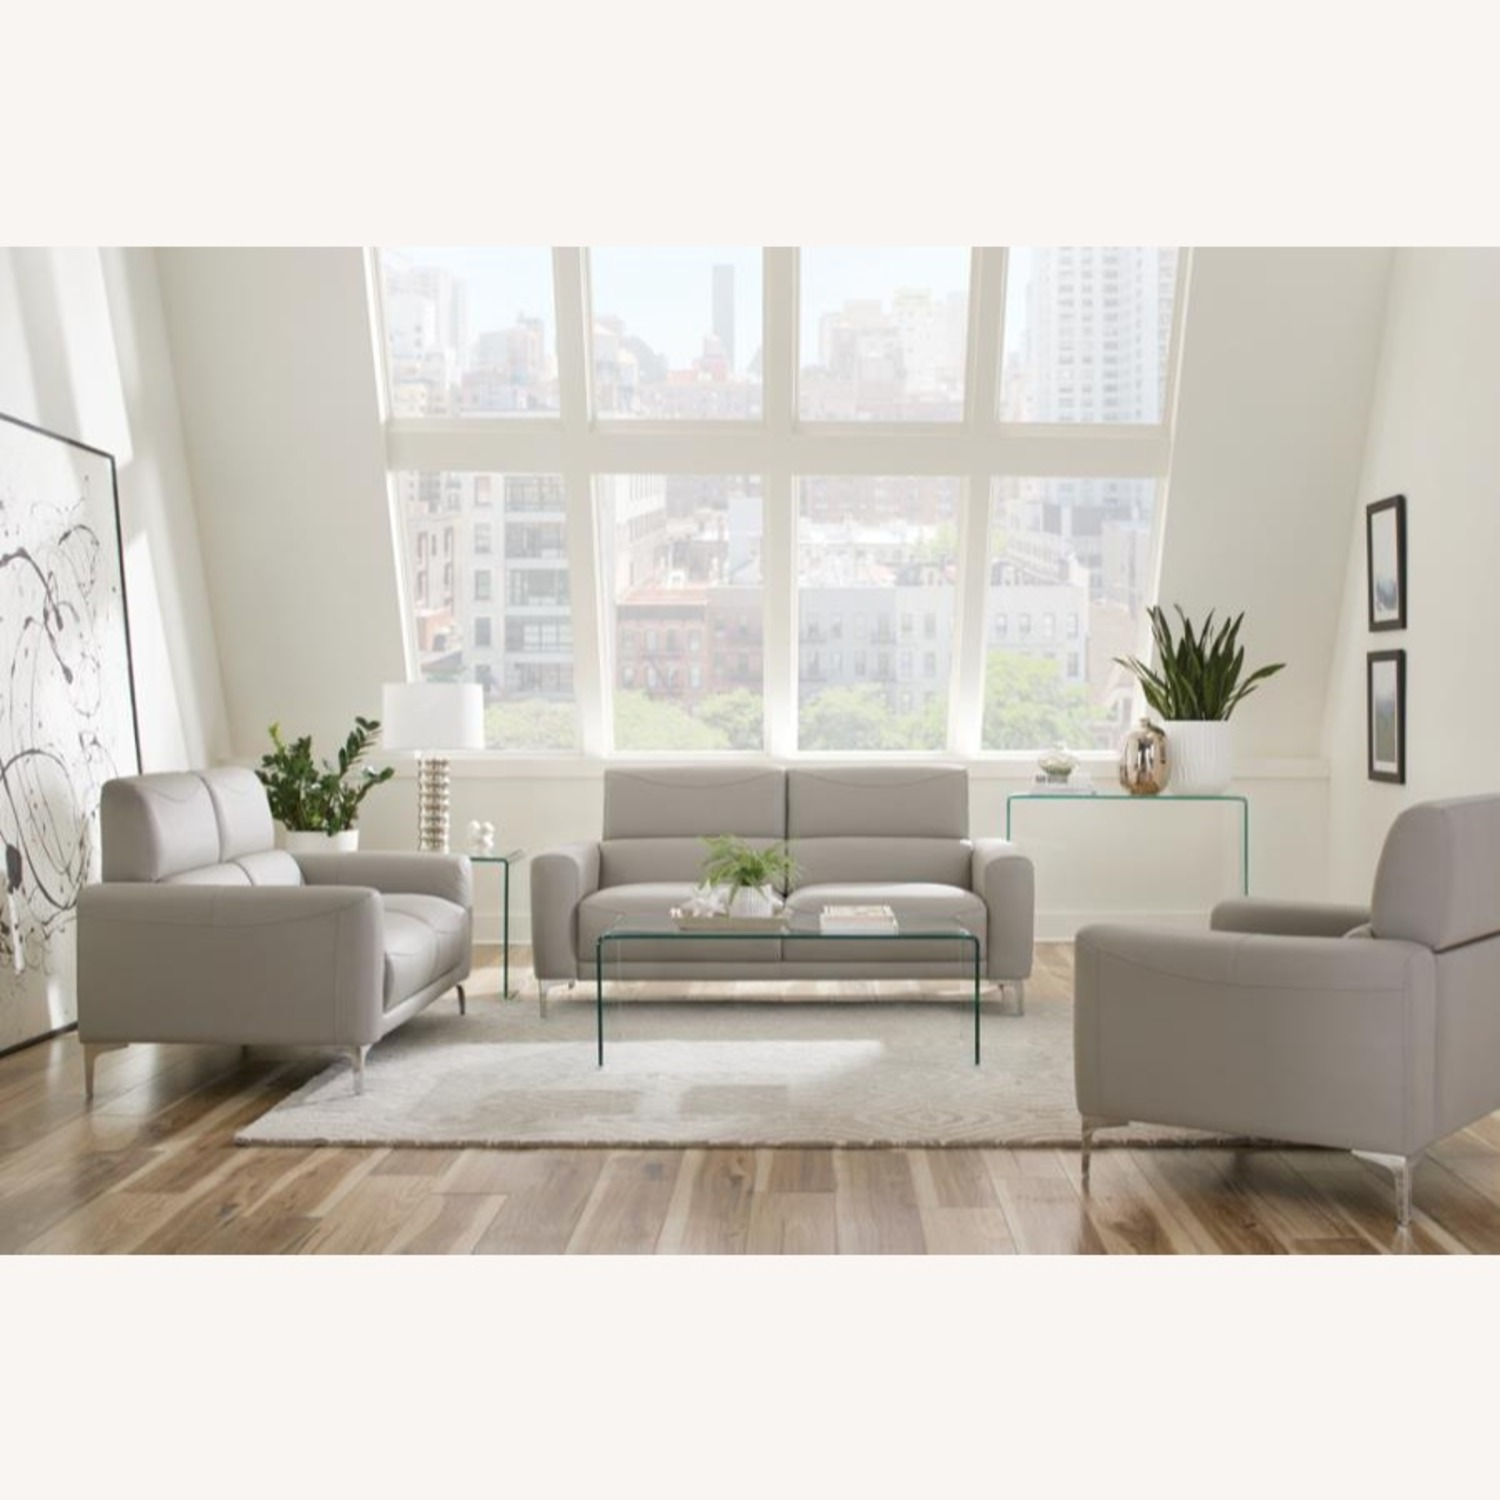 Sofa In Taupe Leatherette W/ Tall Metal Legs - image-2